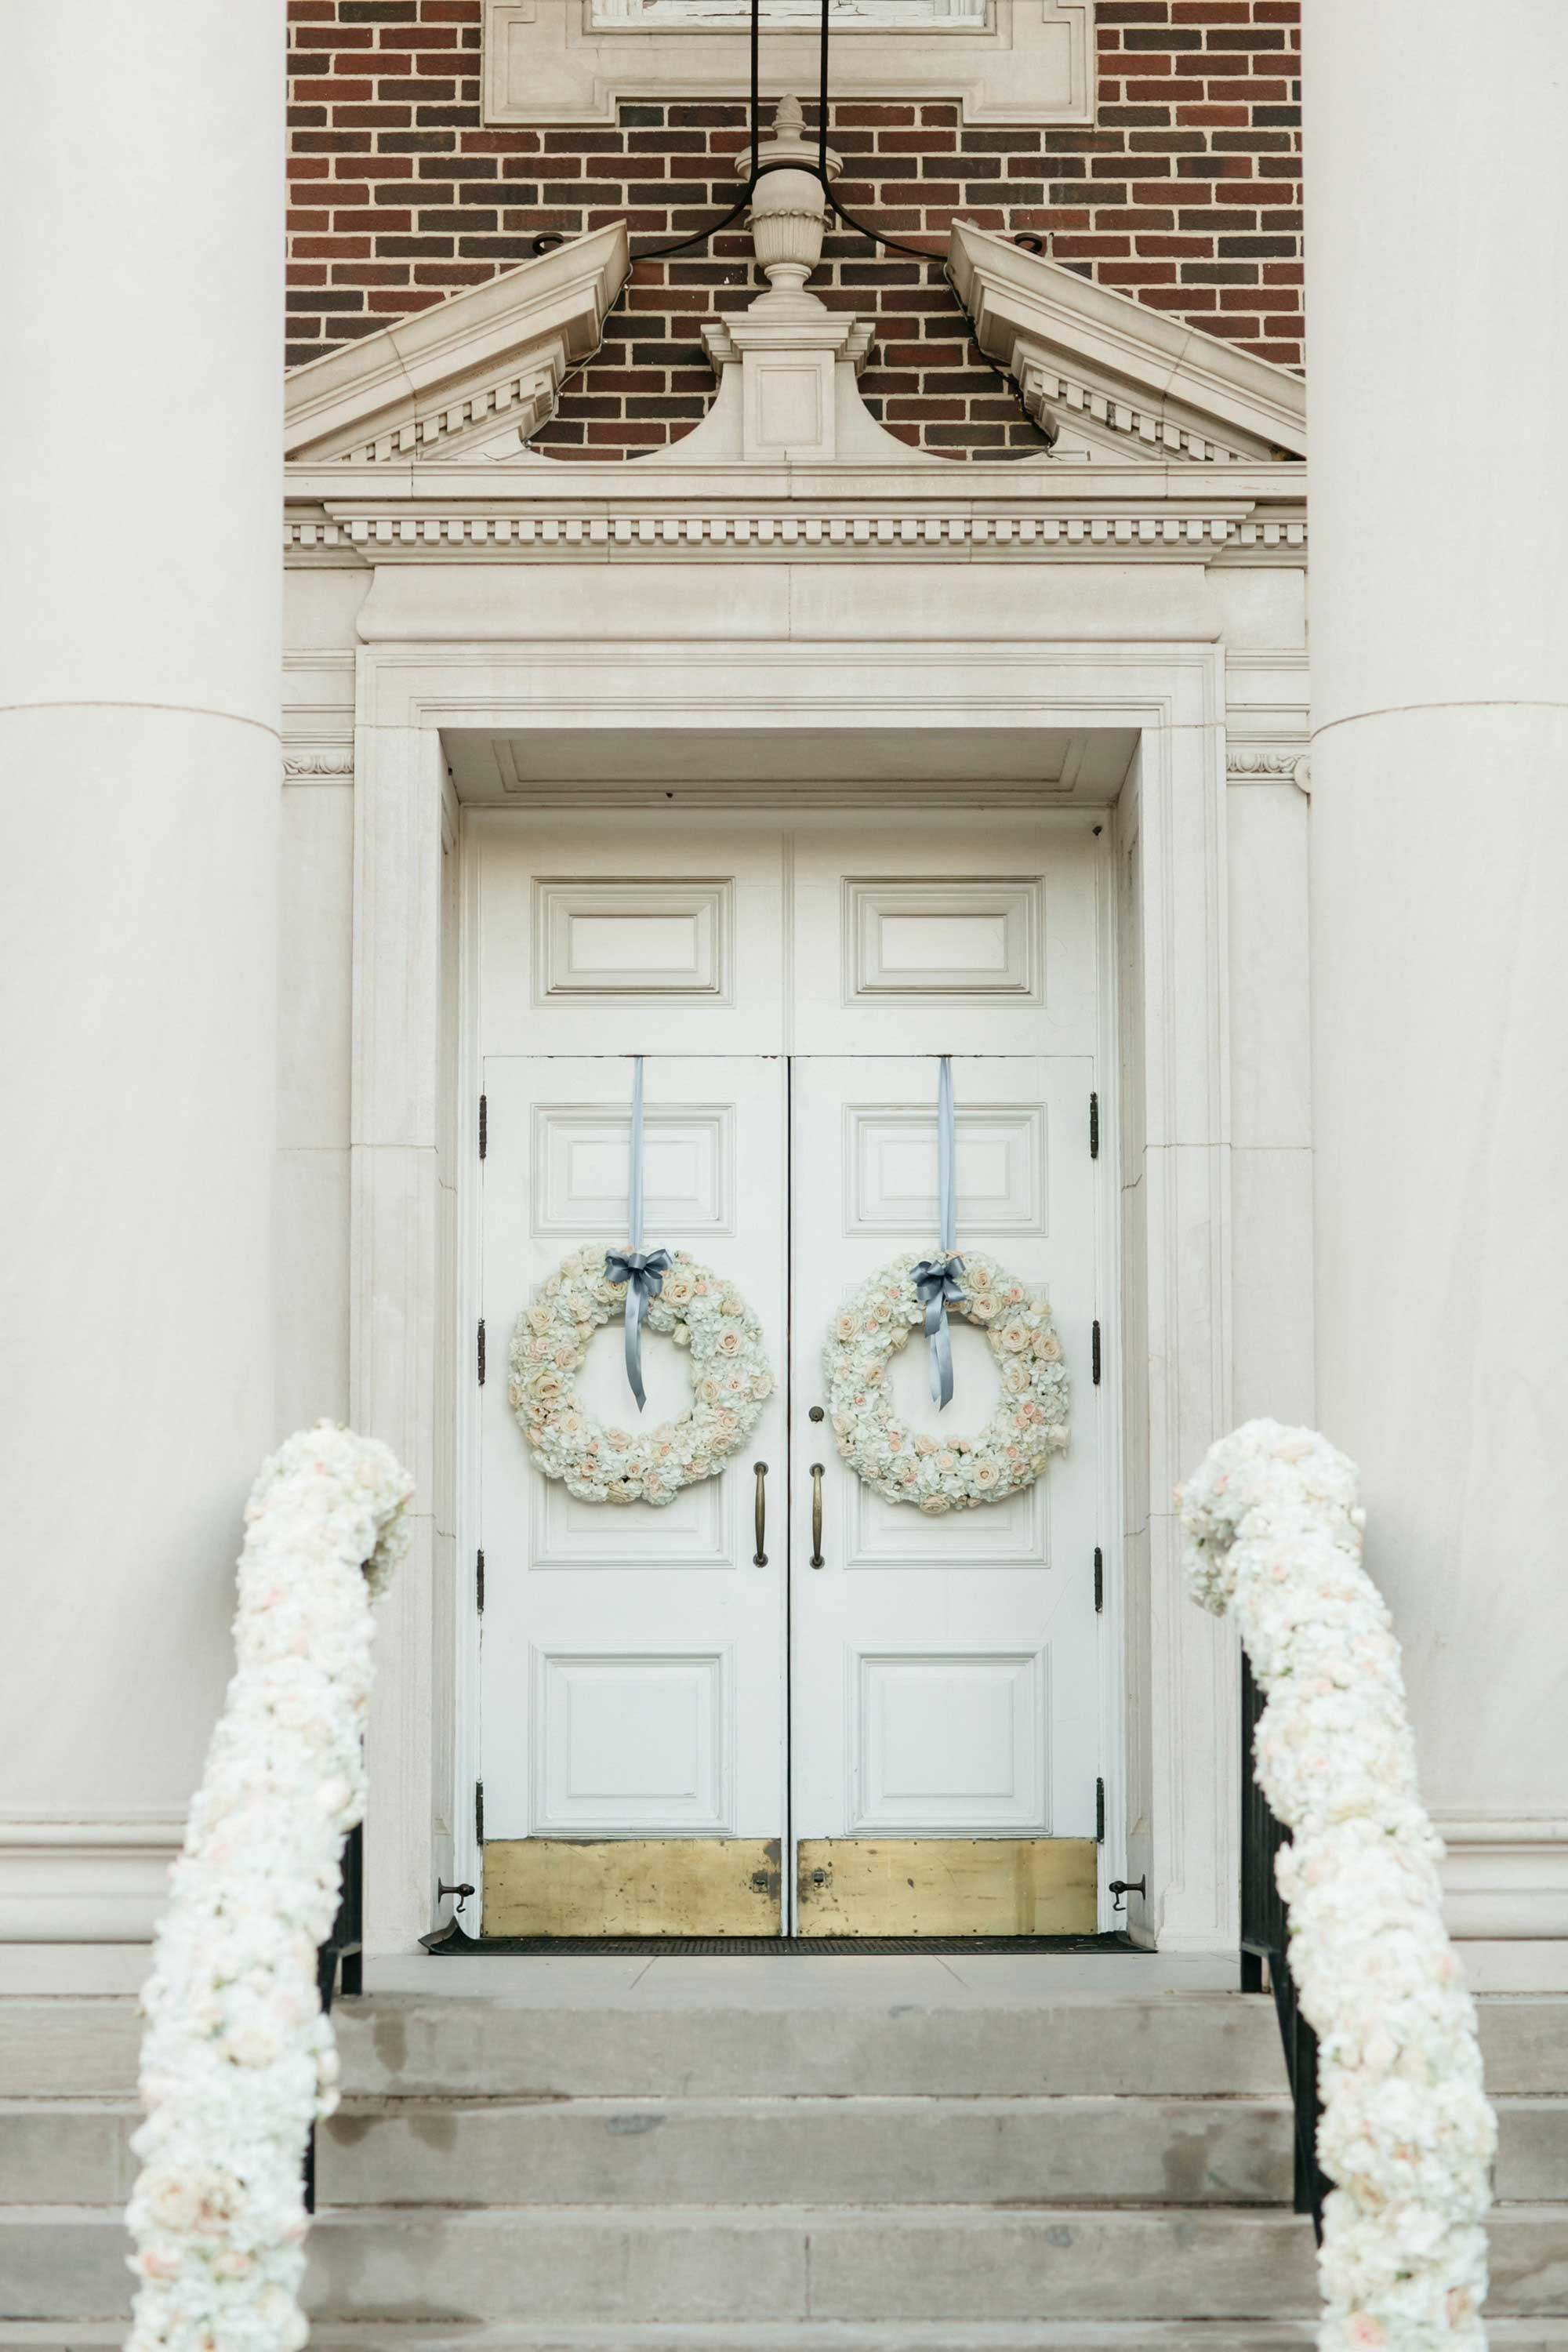 White flower wreaths hanging on church doors with blue ribbon